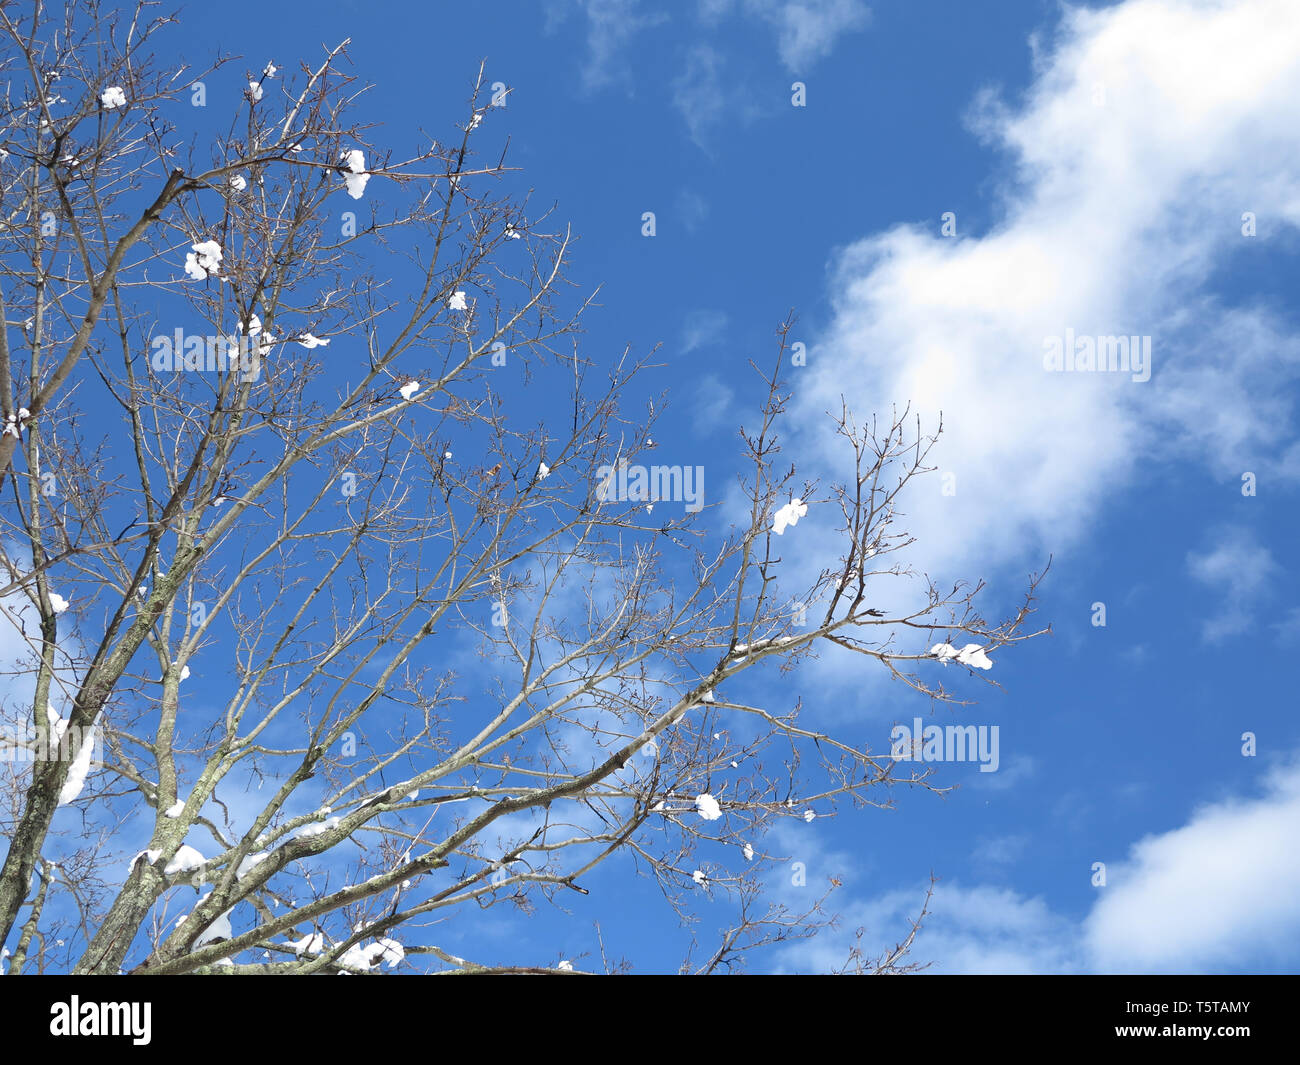 Looking Up at Snow Tipped Branches In the Winter on a Clear Blue Day Stock Photo